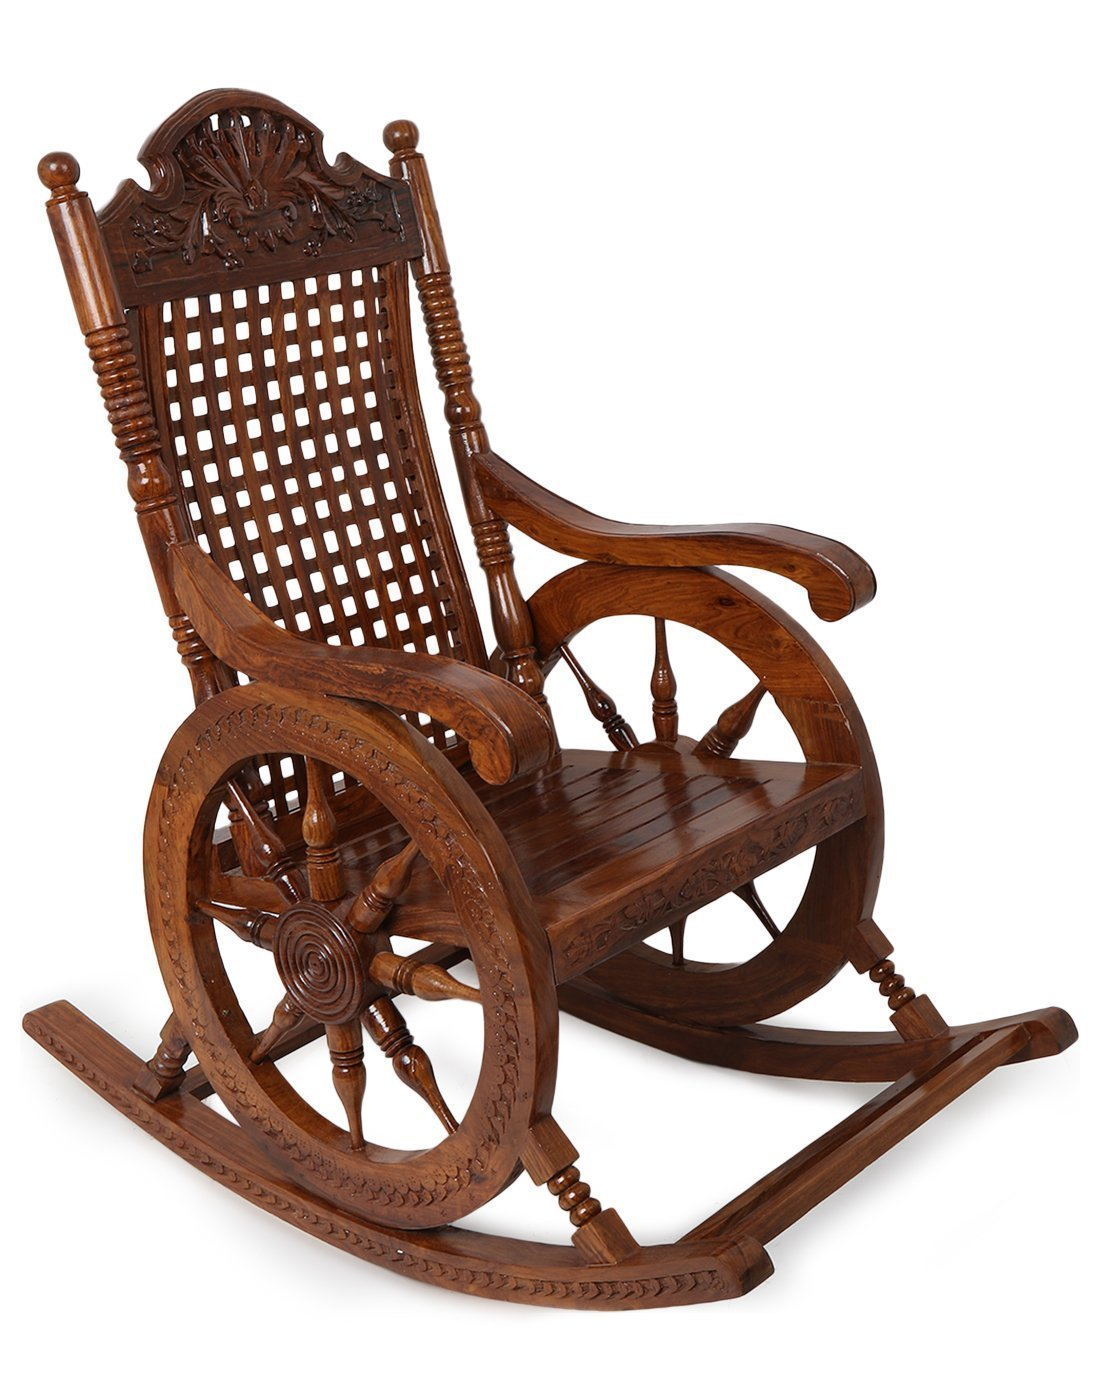 craft a to z Sheesham Wood Rocking Chair for Living Room/Garden - Natural Rosewood Finishing